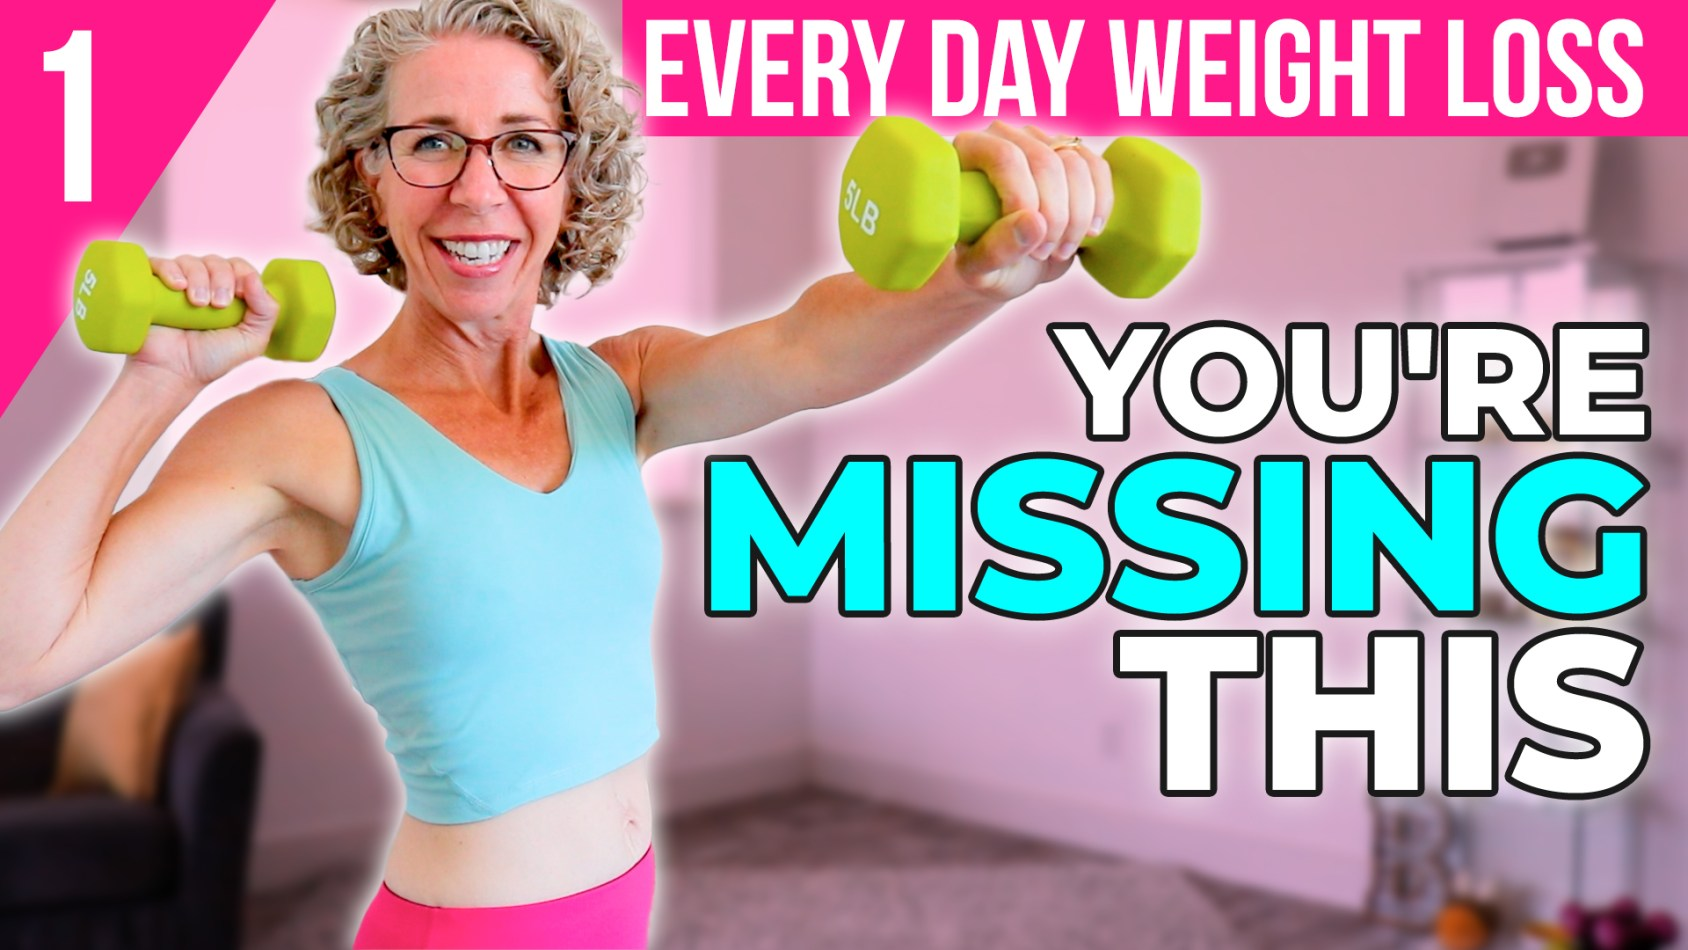 Essential WEIGHTS over 50 1️⃣ Lose Weight, Get Fit + Healthy